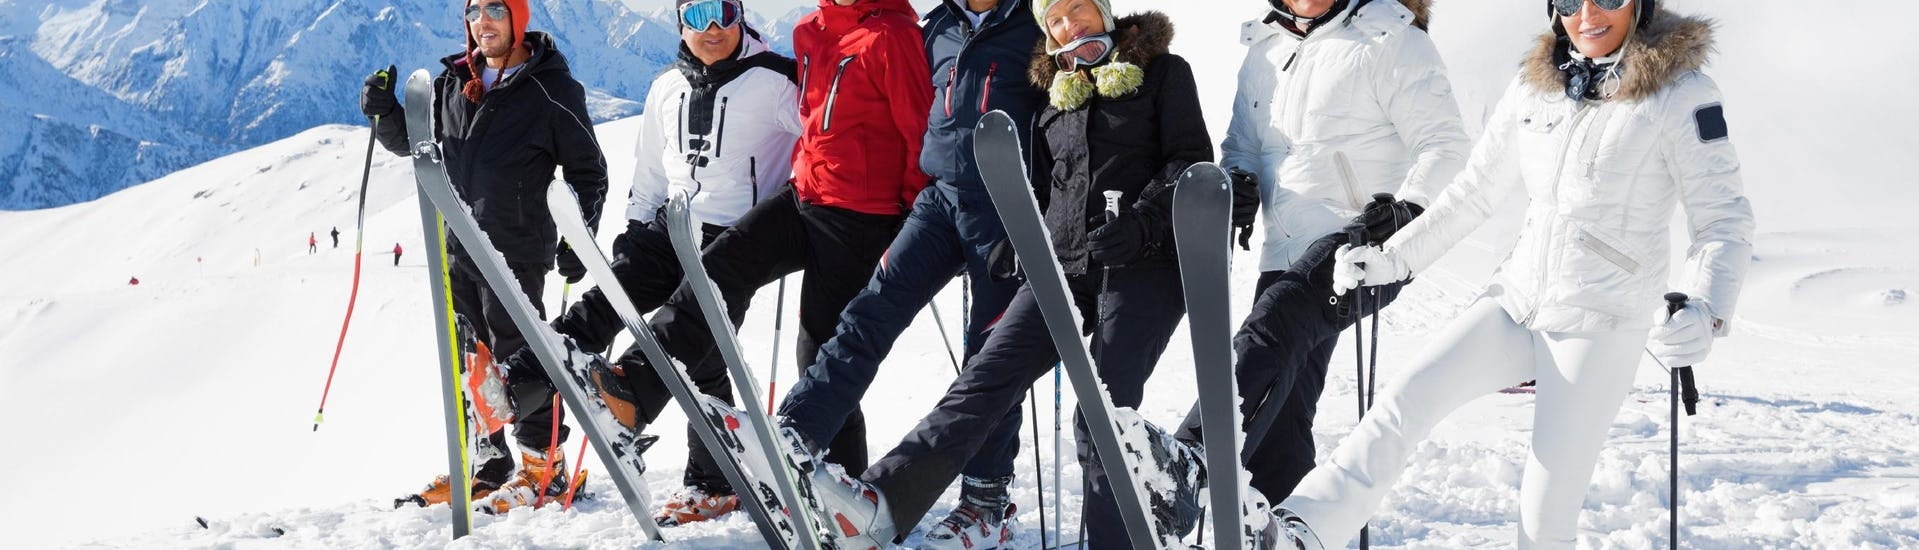 "Ski Lessons for Adults ""ALL in ONE""- All Levels"